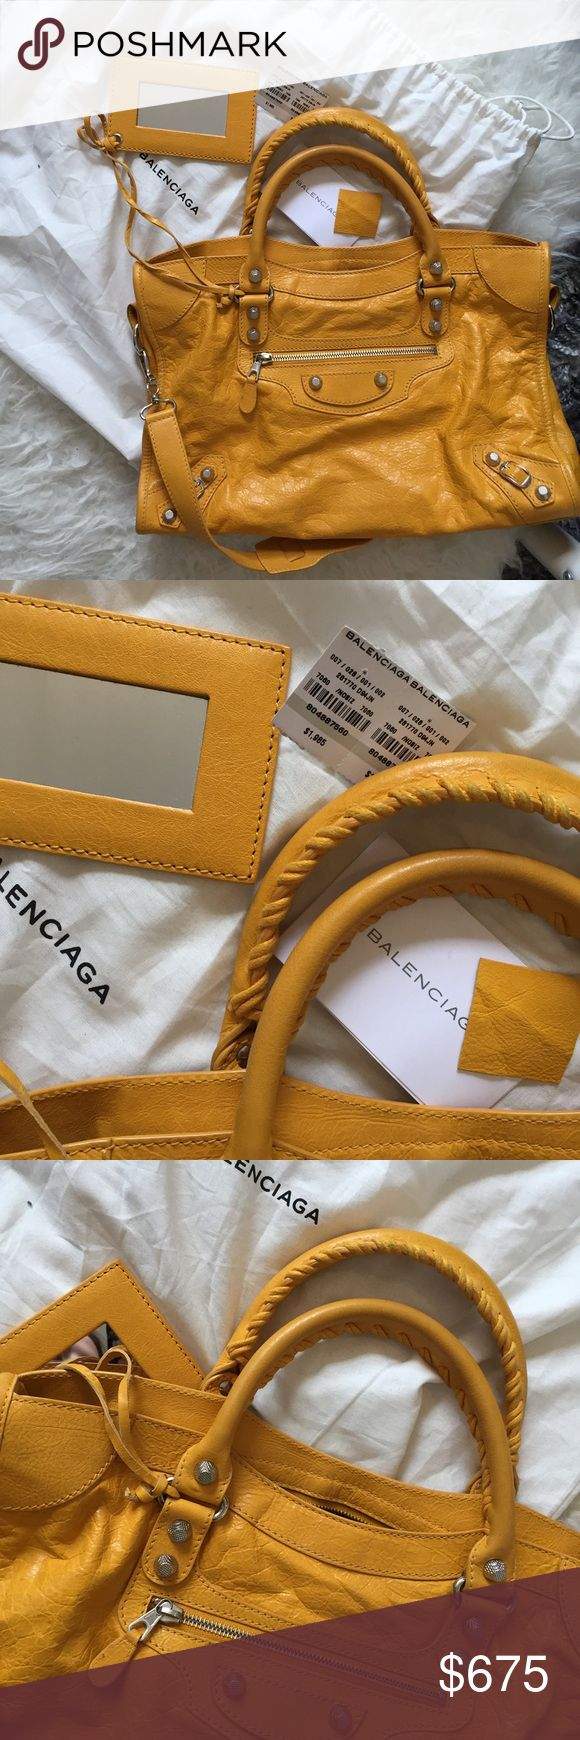 Balenciaga Gold City Bag Ridiculously rare, only around 100 made with this combination of hardware and color. Bought directly from Balenciaga, comes with all identification and authentication documents. Amazing condition with extremely light wear at handles which will come off with leather cleaner. Bought in June of 2016. Balenciaga Bags